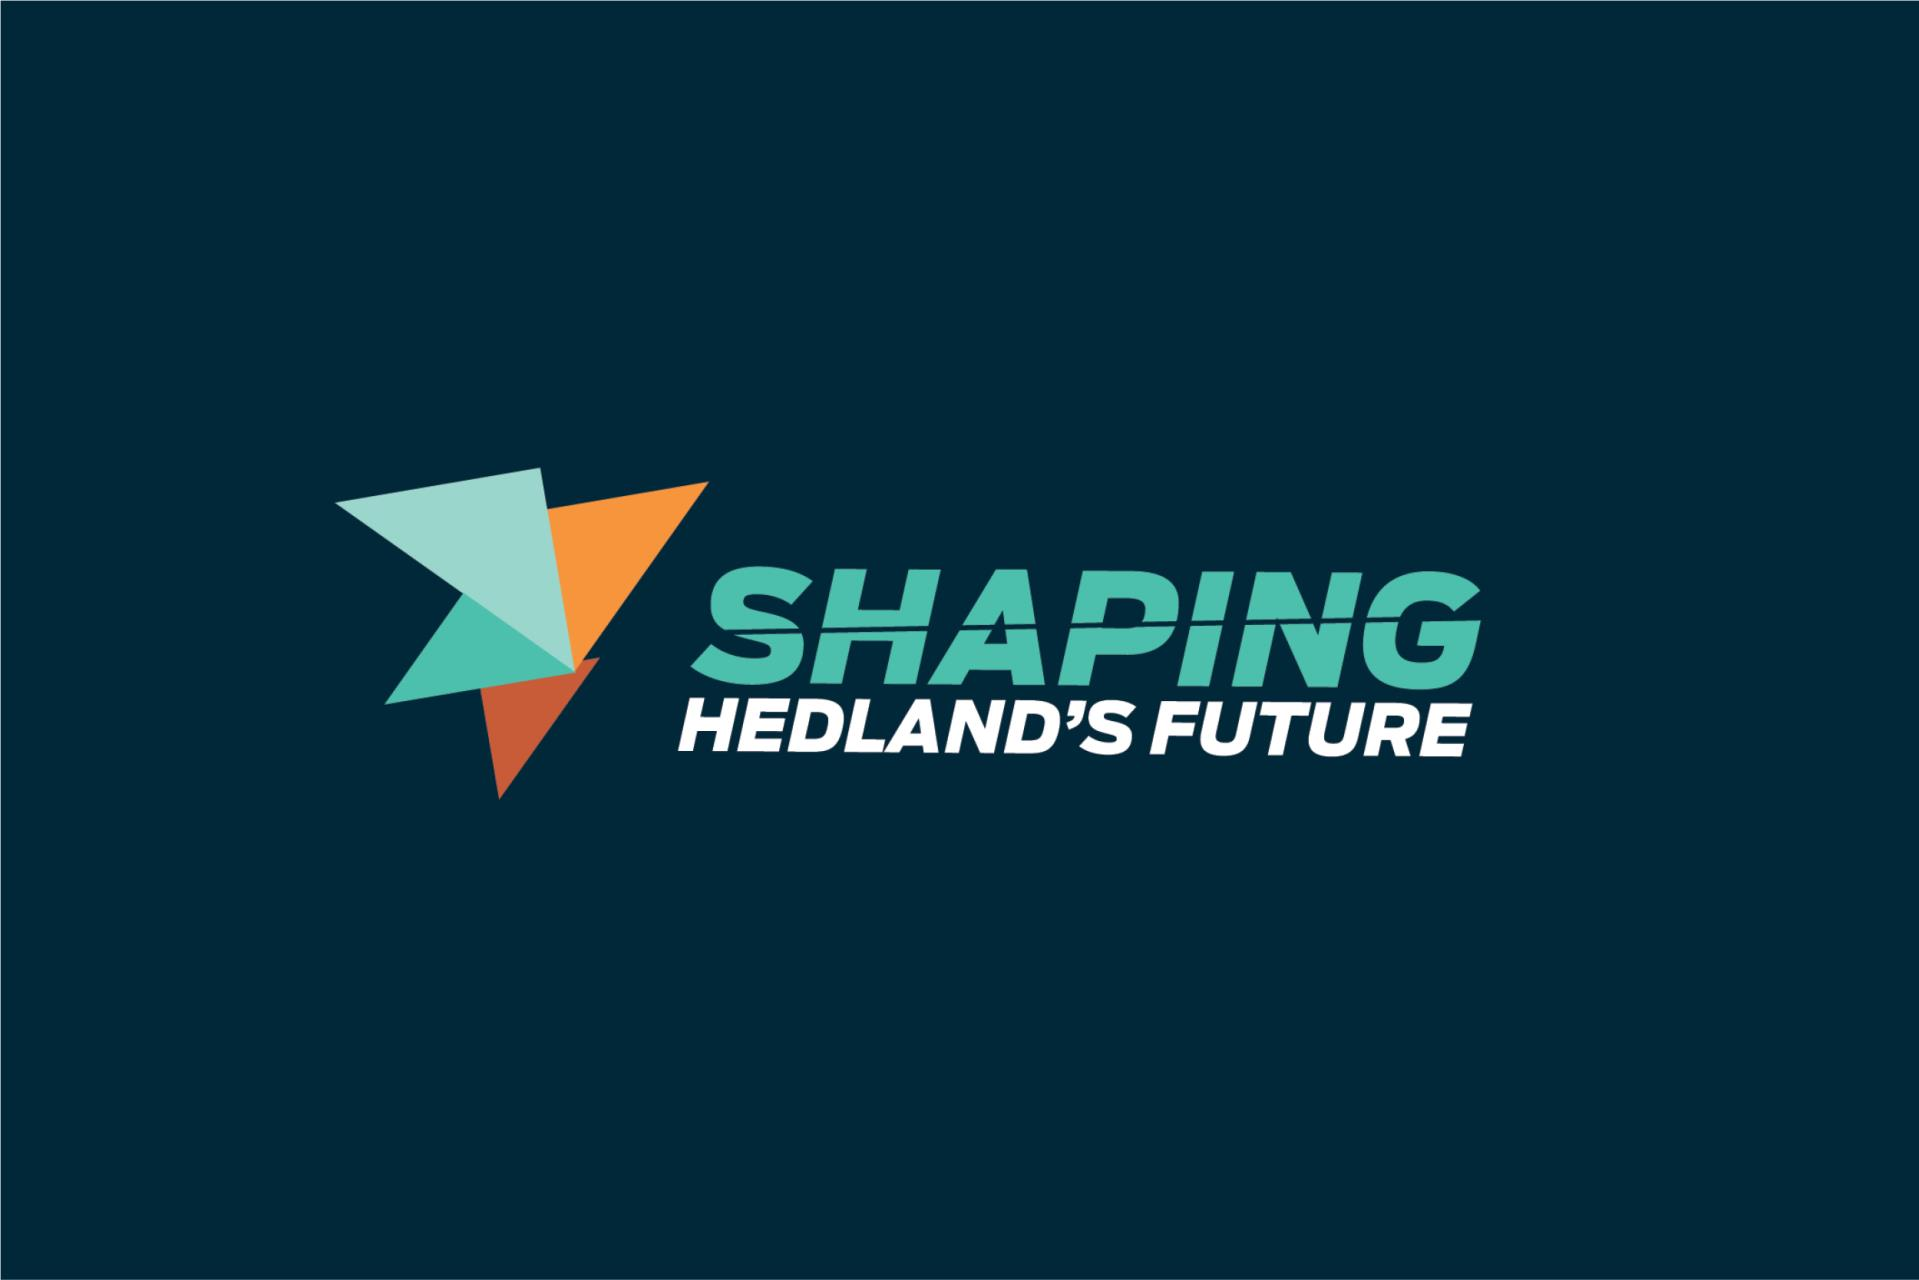 The Future of Land Use Planning in Hedland Takes Shape